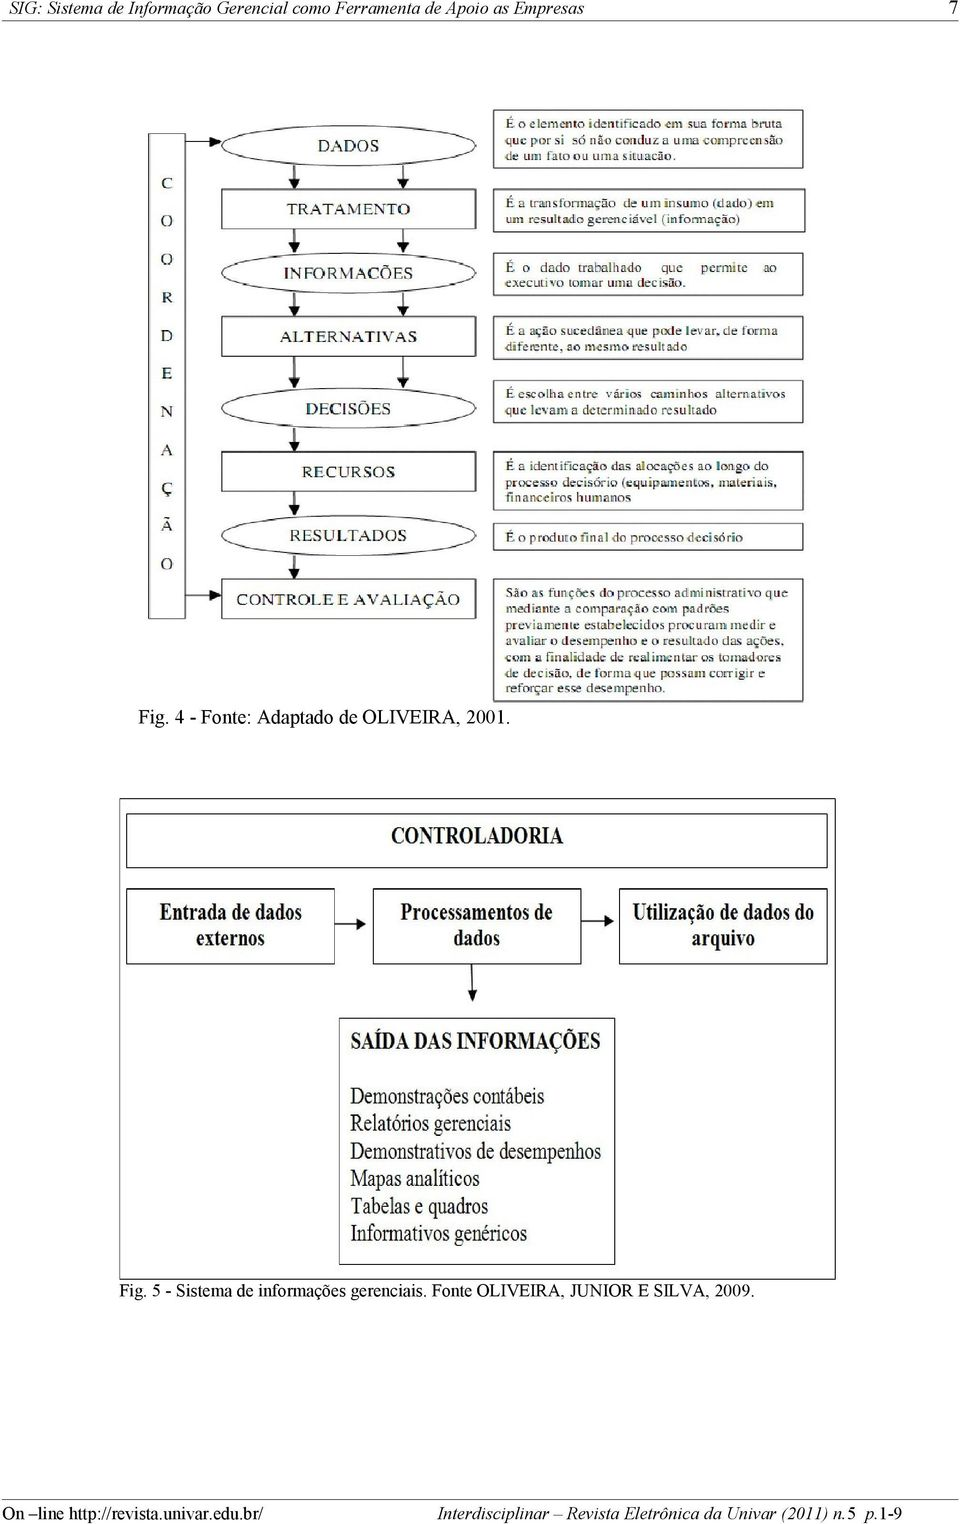 4 - Fonte: Adaptado de OLIVEIRA, 2001. Fig.